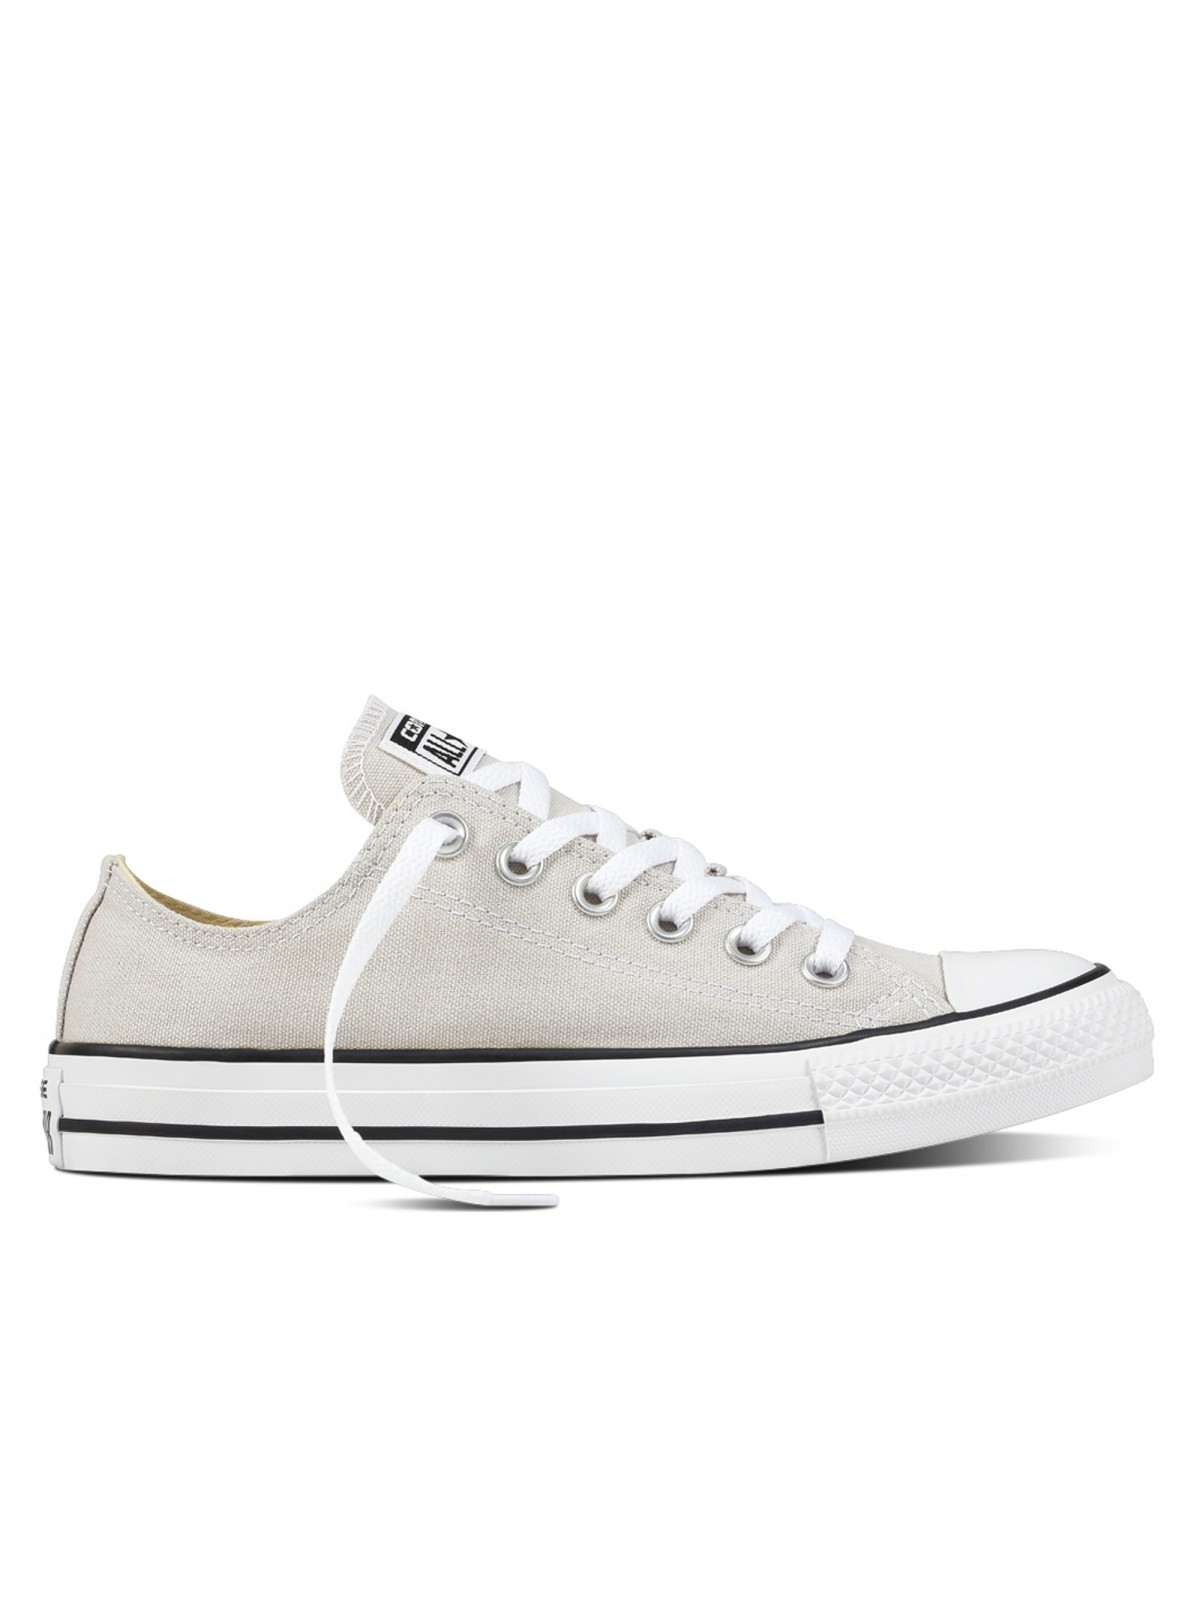 Converse Chuck Taylor all star toile basse putty